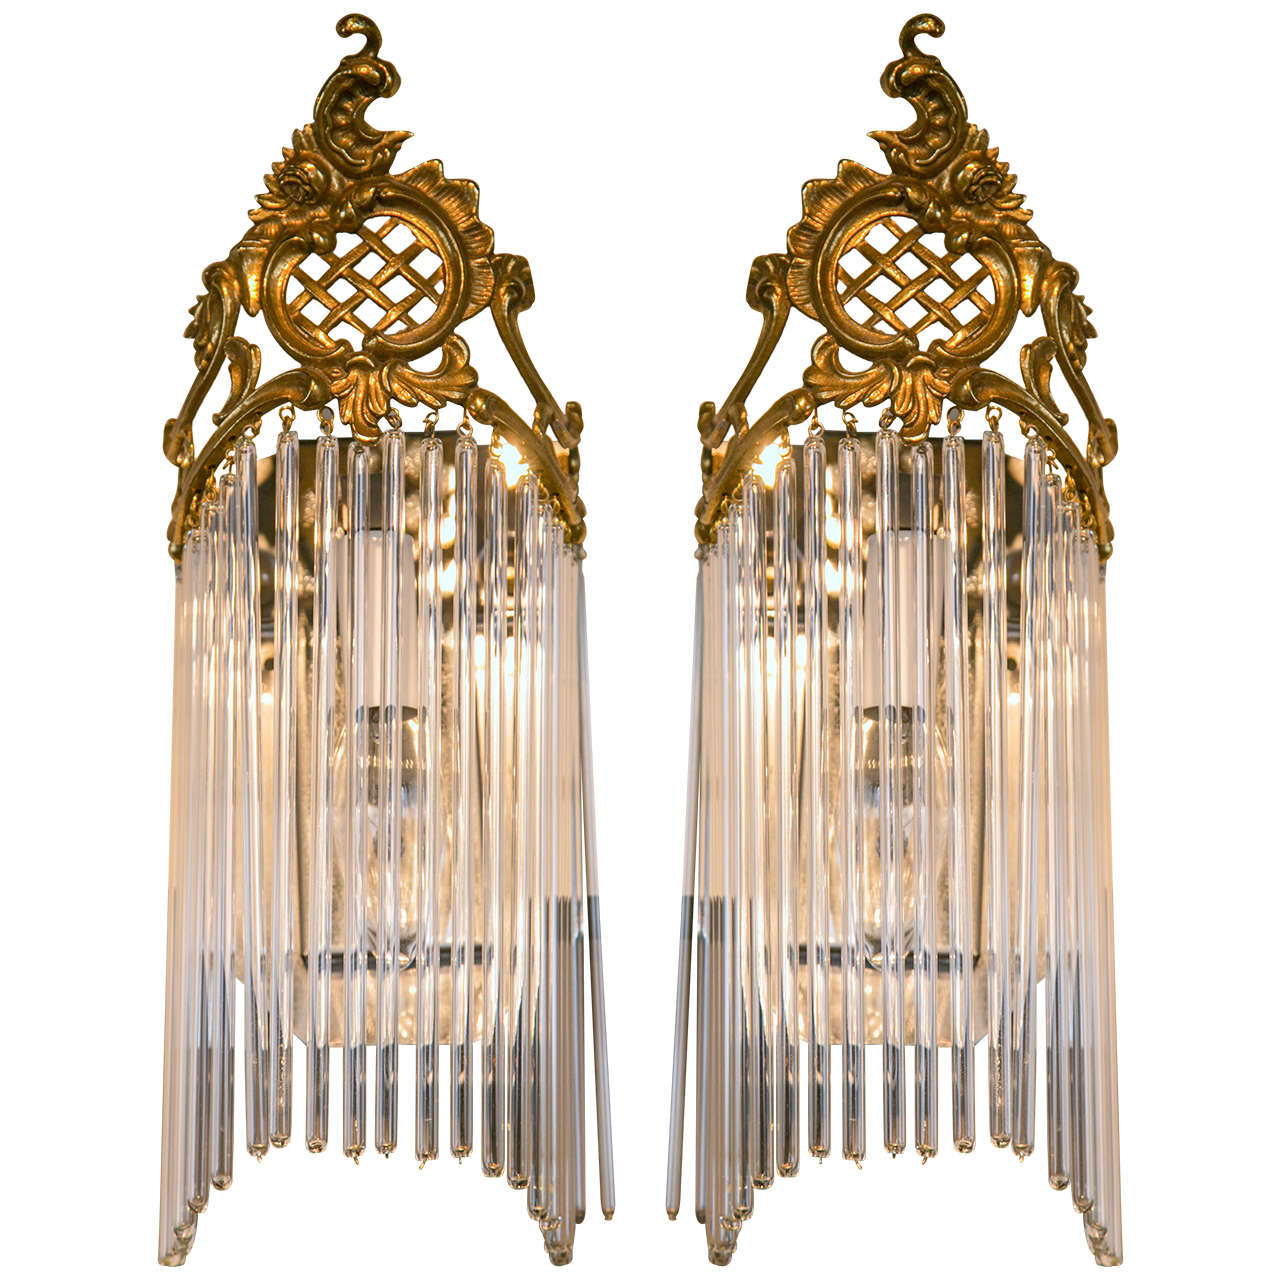 Charmant Pair Of Art Nouveau Wall Sconces For Sale